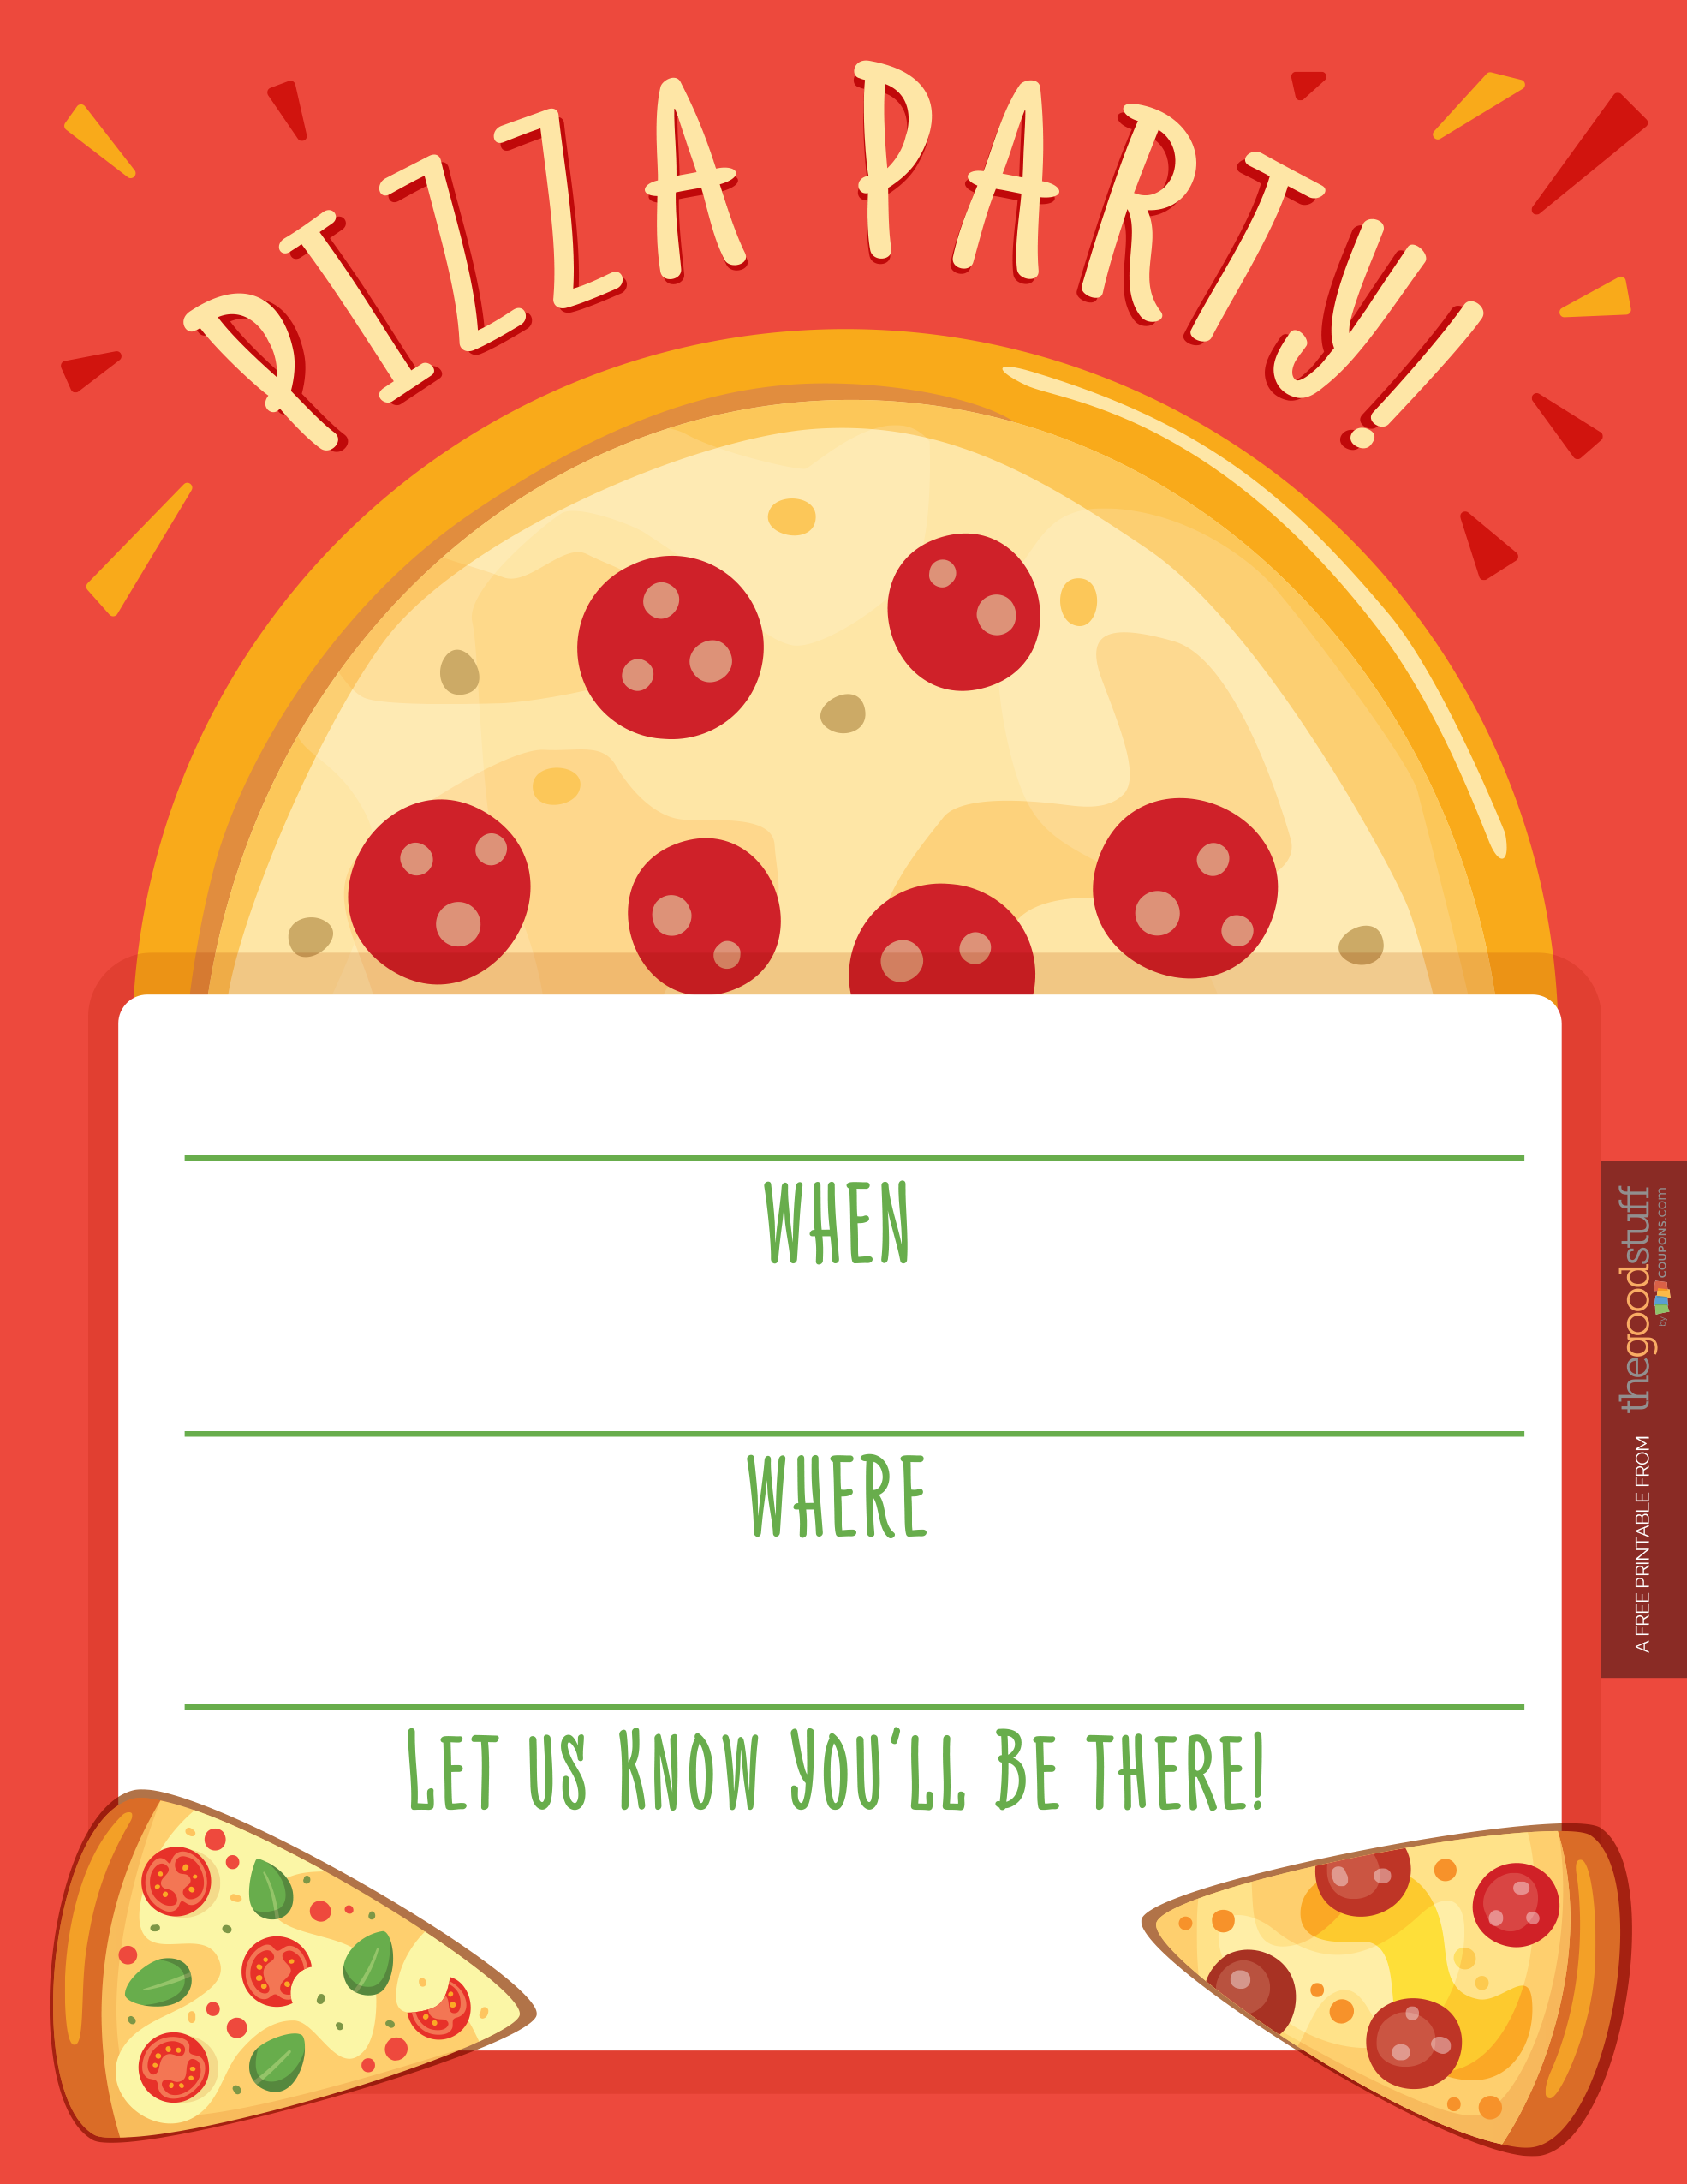 hostess helpers pizza party printables party printables hostess helpers pizza party printables kids pizza party invitation thegoodstuff